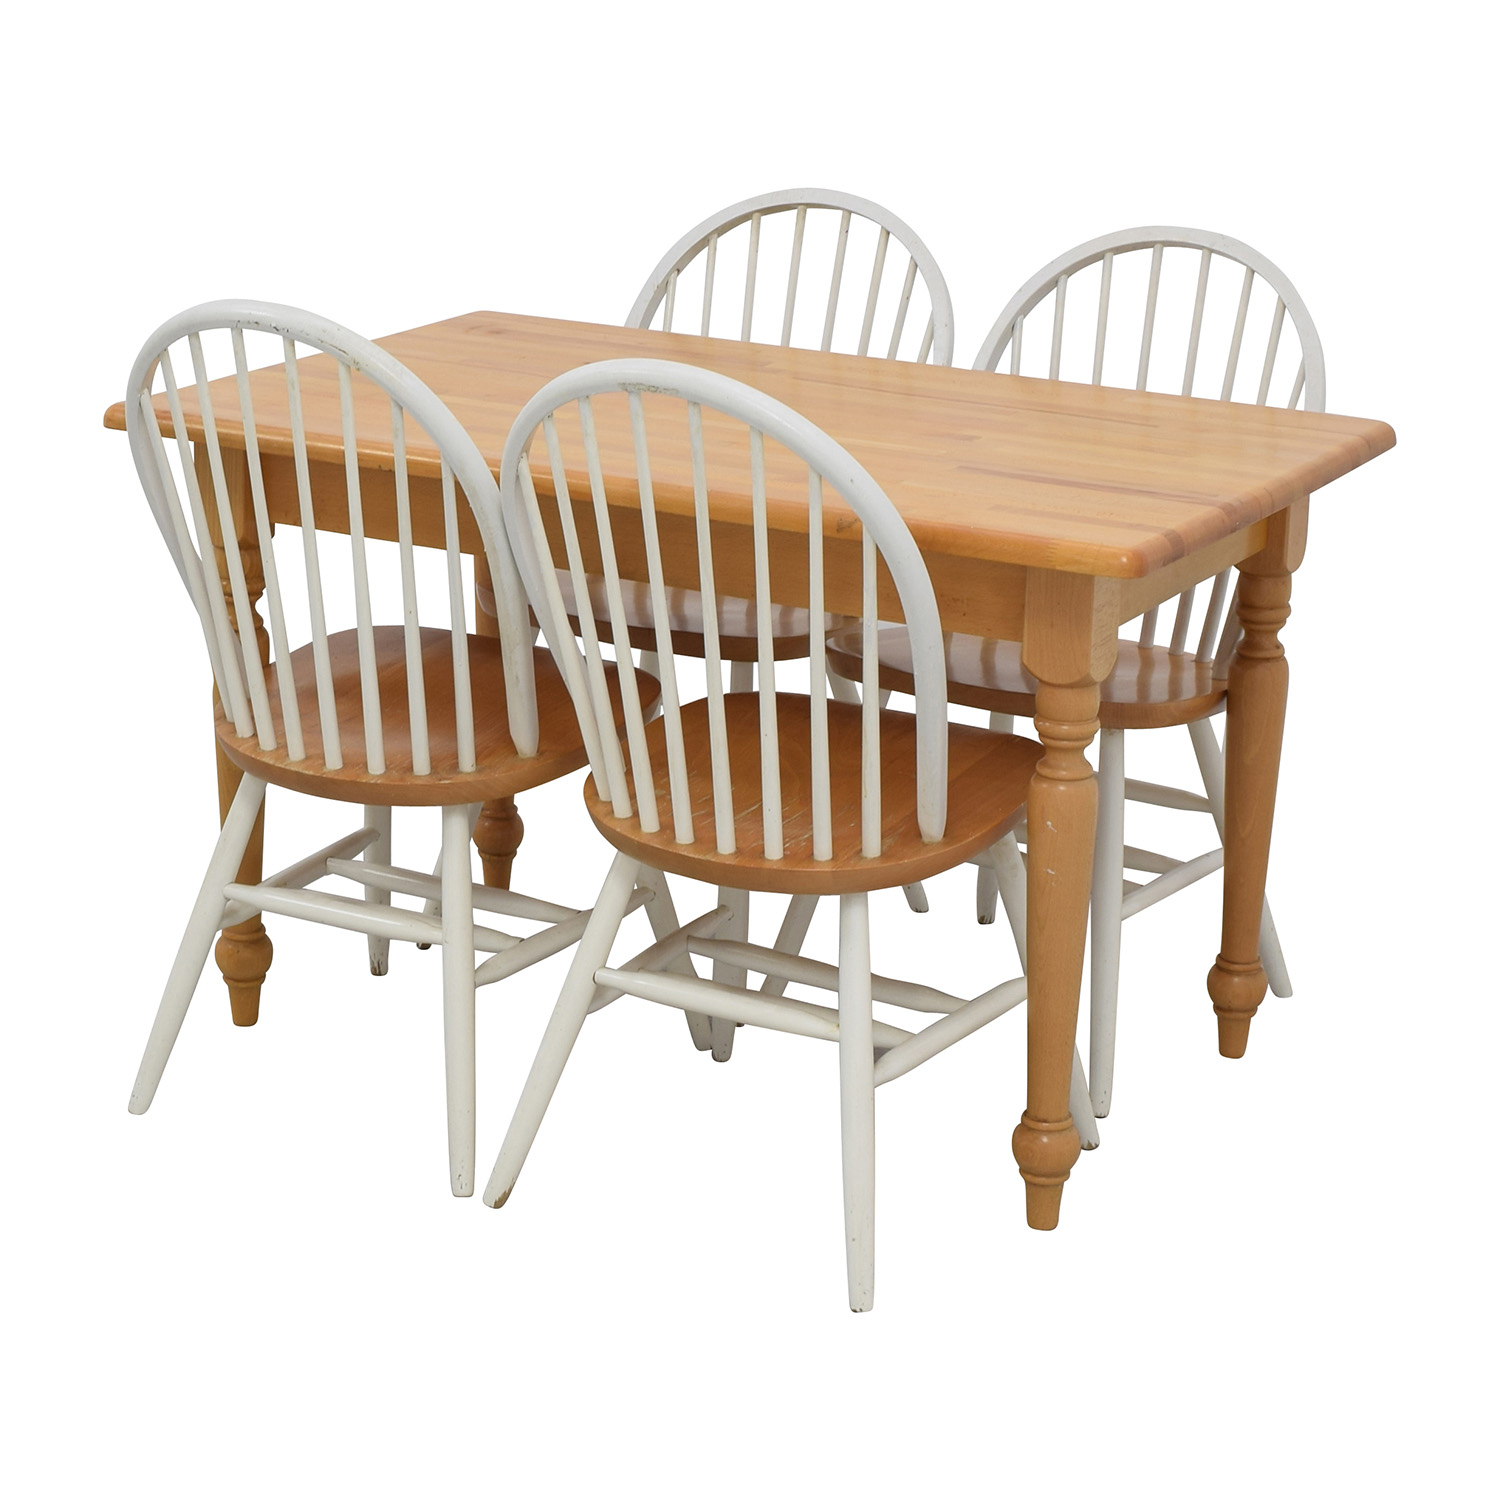 84 off butcher block kitchen table and four chairs tables - Butcher block kitchen table set ...